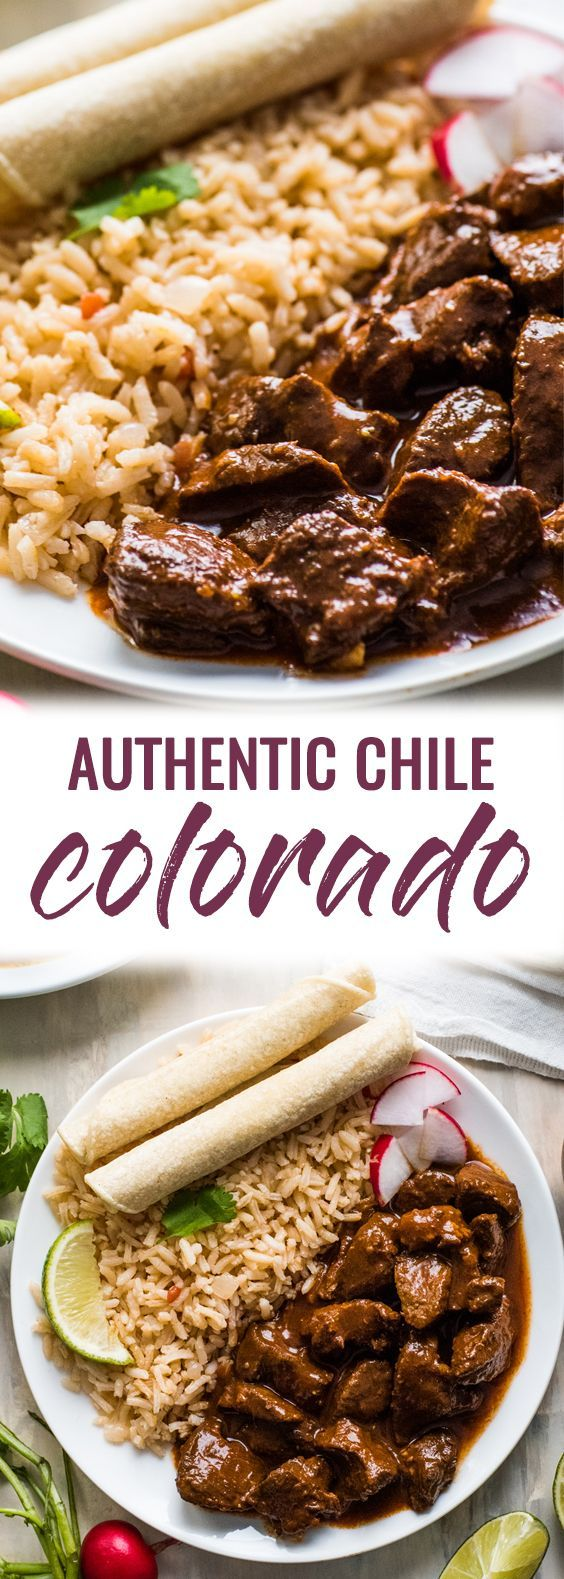 This Chile Colorado recipe combines tender pieces of beef with a rich and flavorful red chile sauce. Serve with rice for an authentic Mexican dinner!   beef stew meat   mexican beef   chili colorado   authentic mexican beef